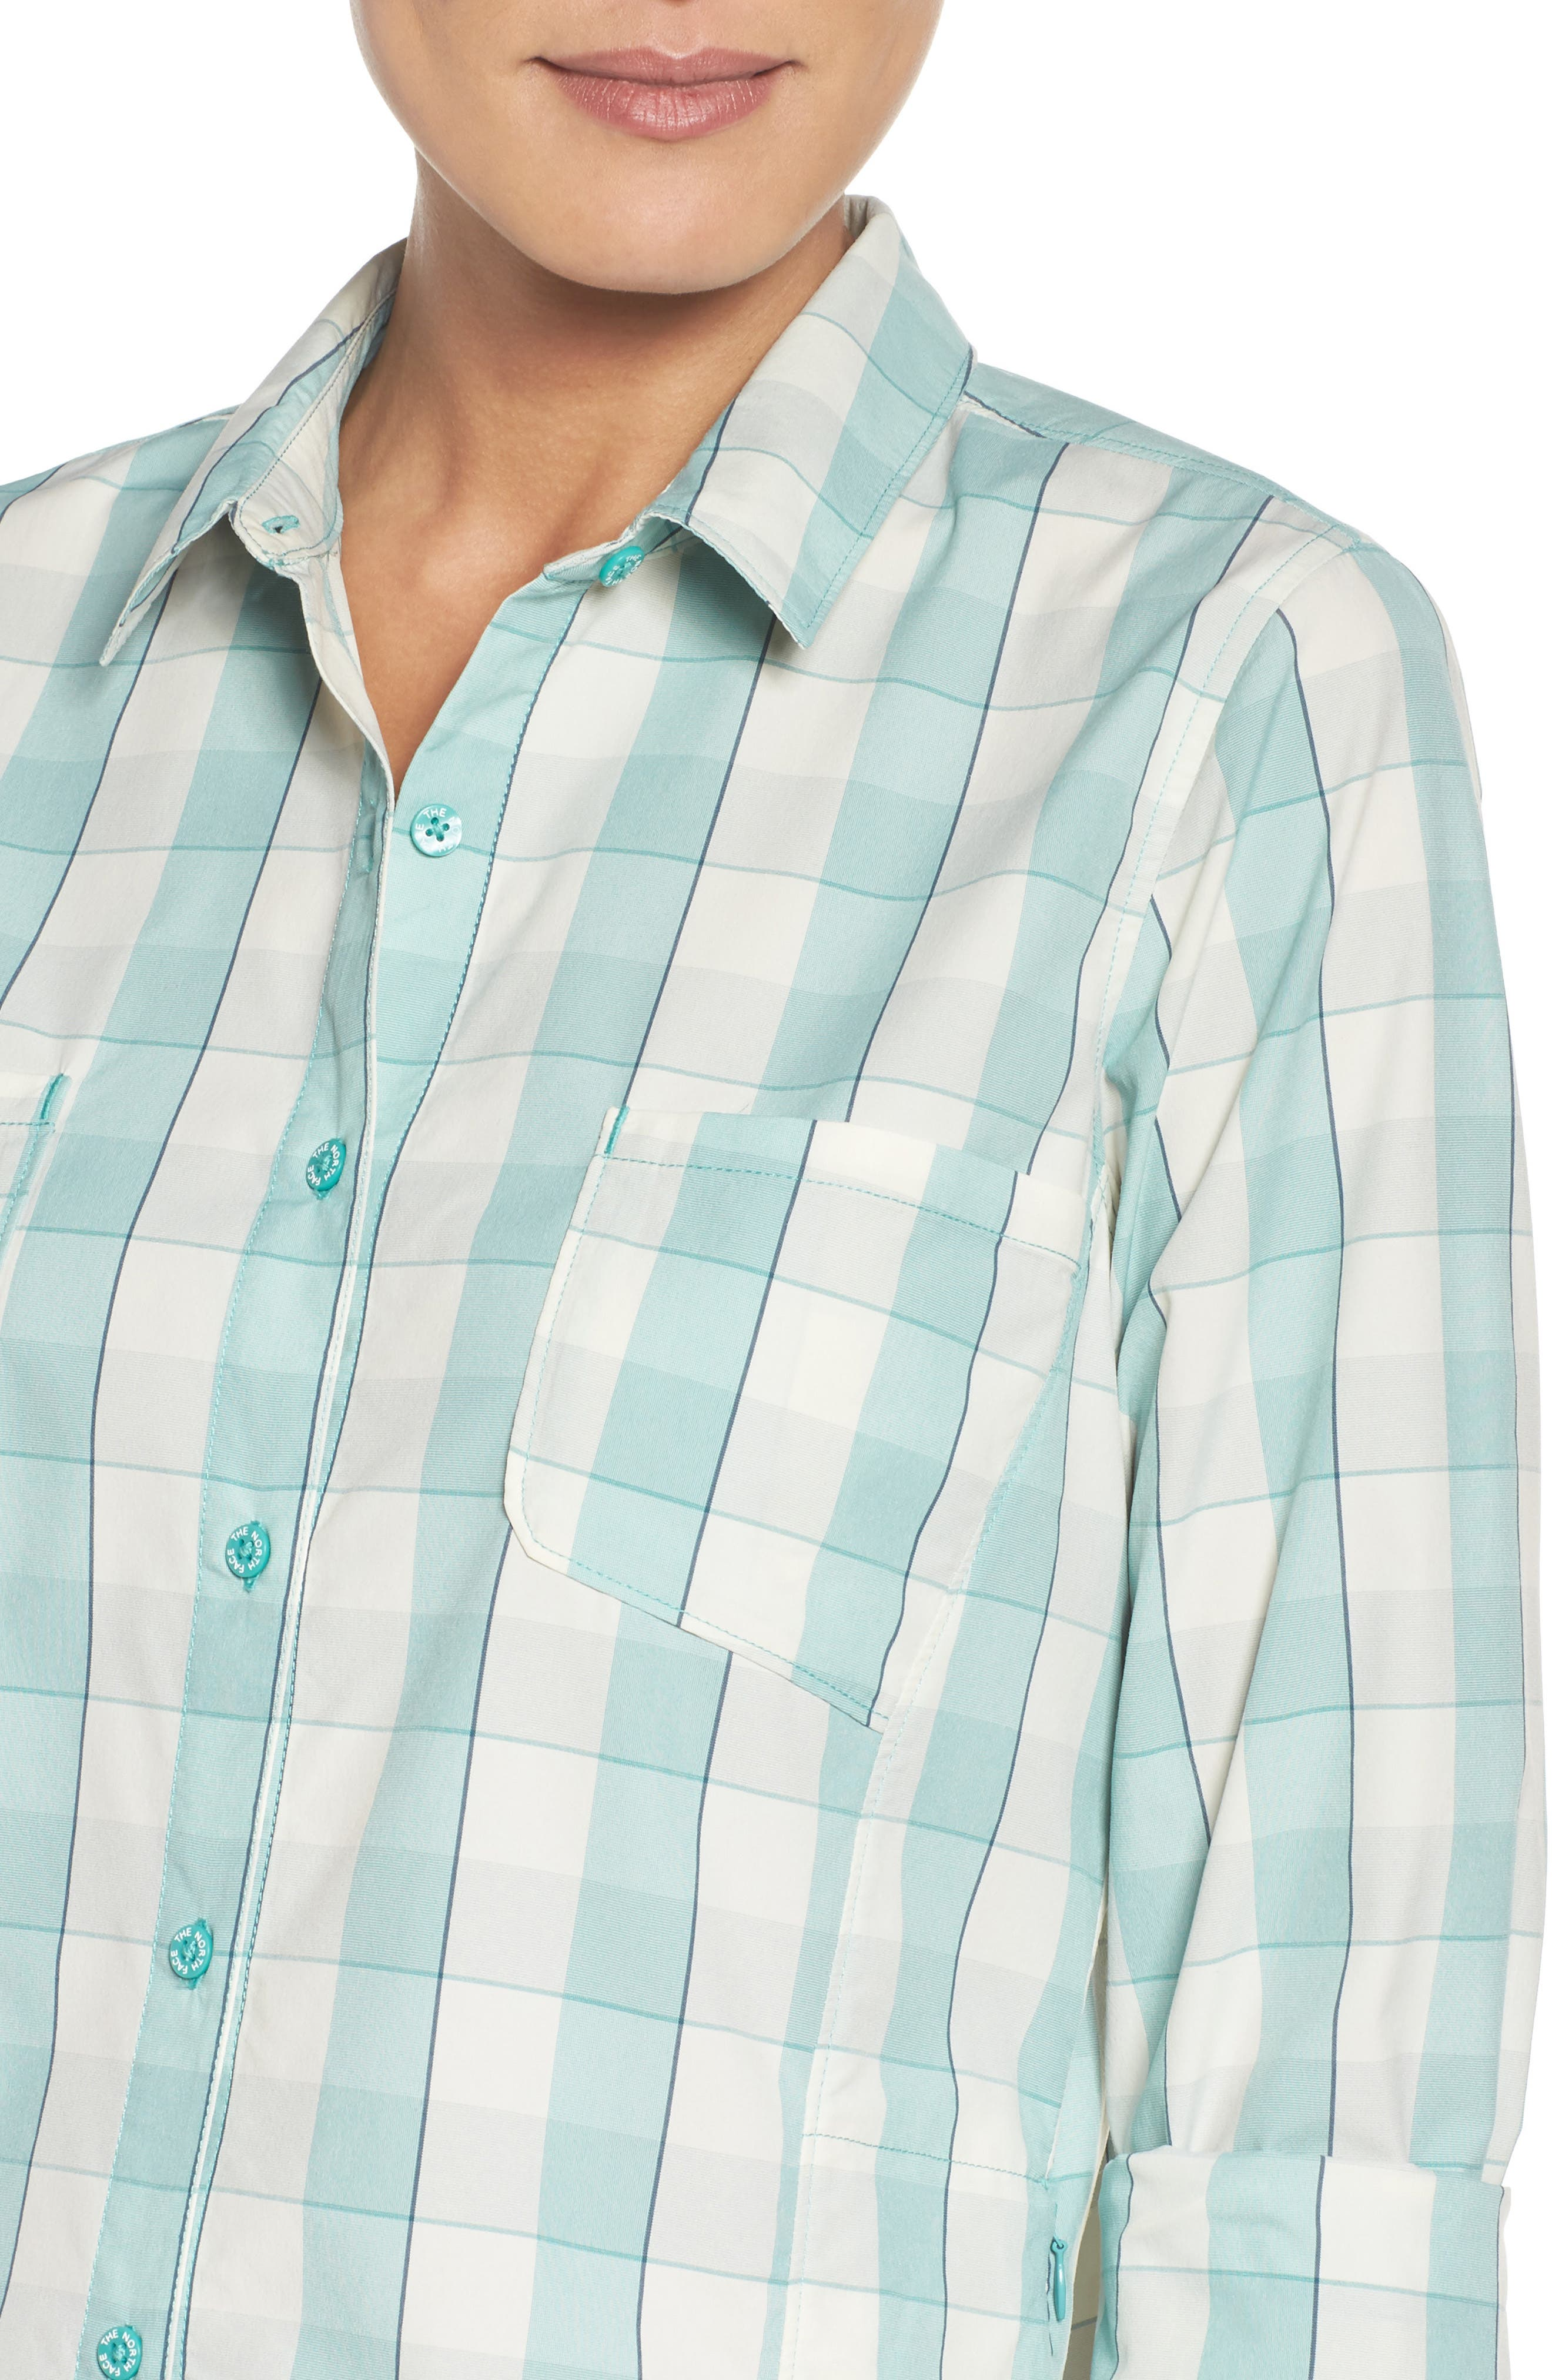 Sunblocker Twill Shirt,                             Alternate thumbnail 4, color,                             310